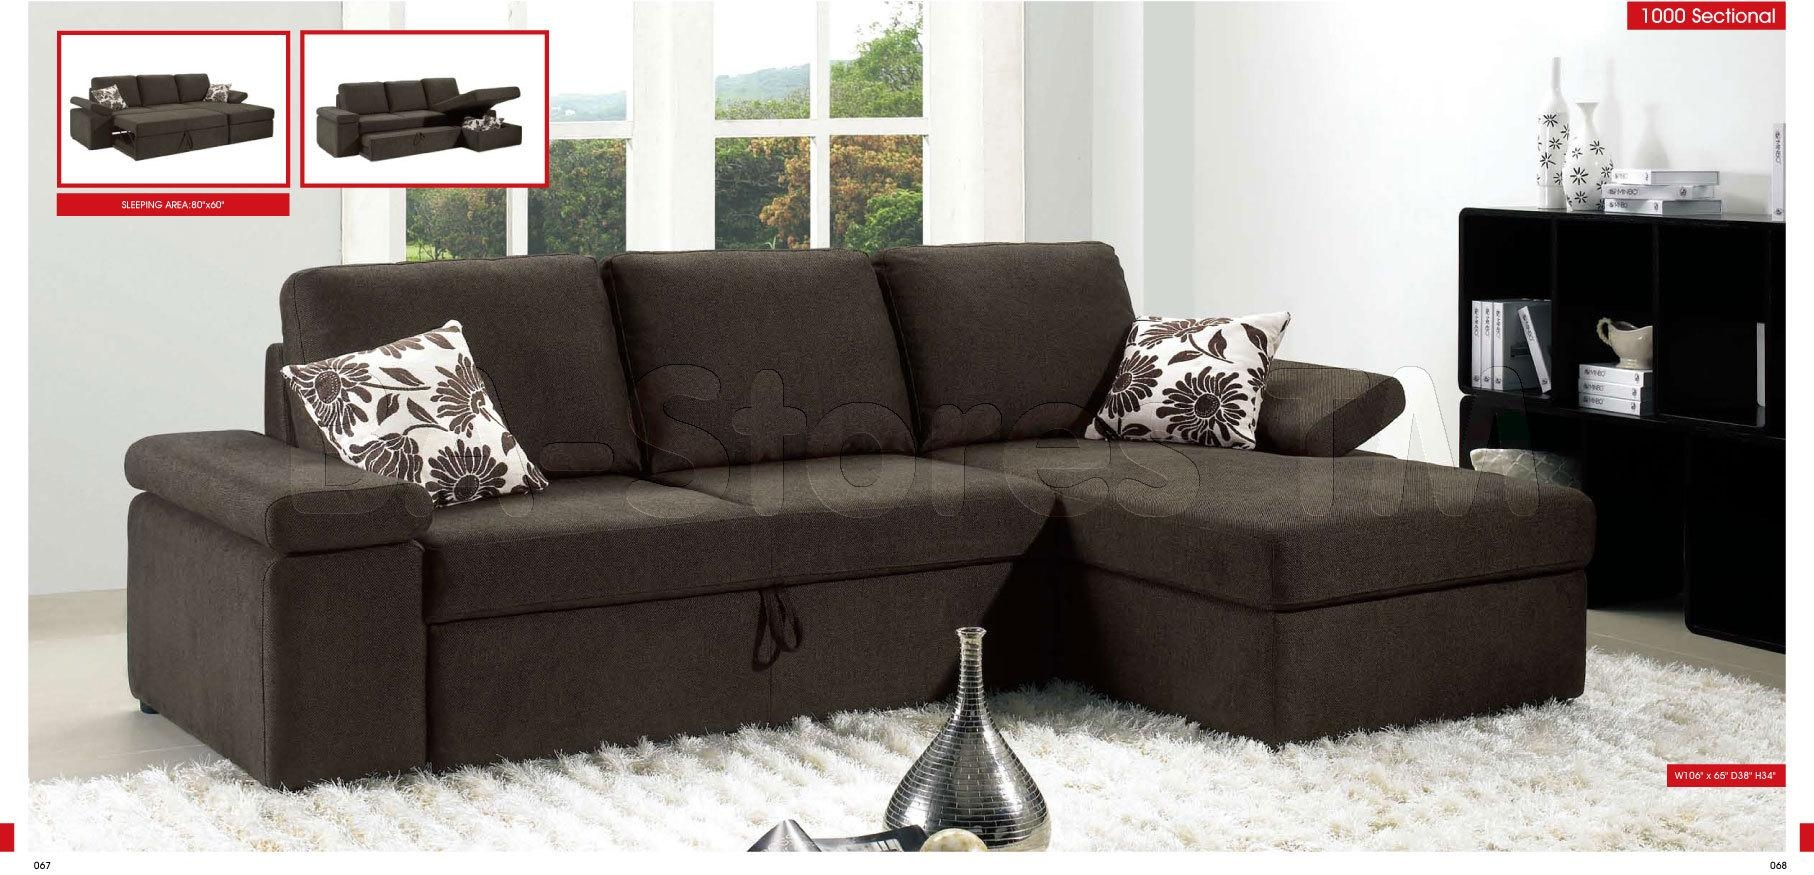 Sofas Center : Sleeper Sofas Value City Furniture Frightening With City Sofa Beds (View 17 of 20)